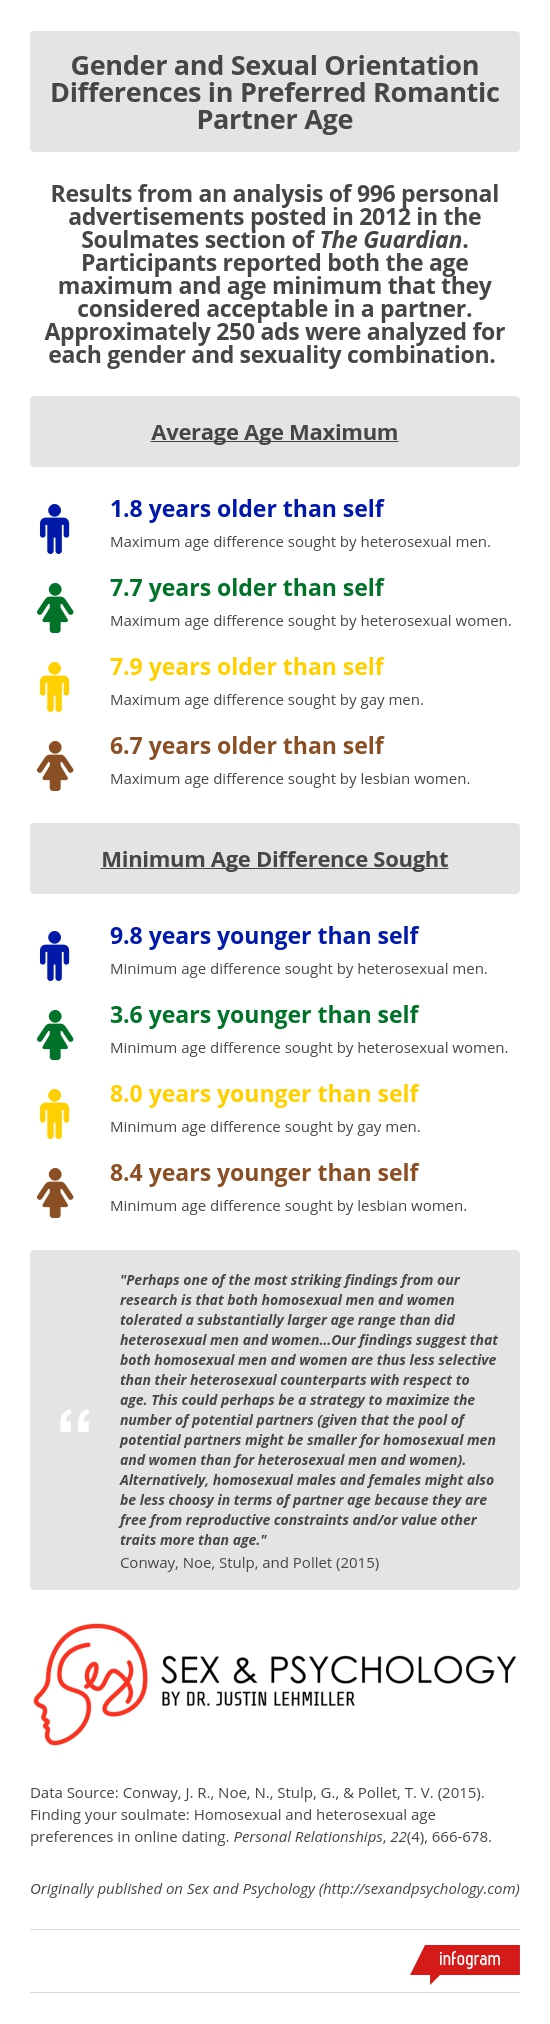 infographic-age-preferences-gender-sexuality.jpg